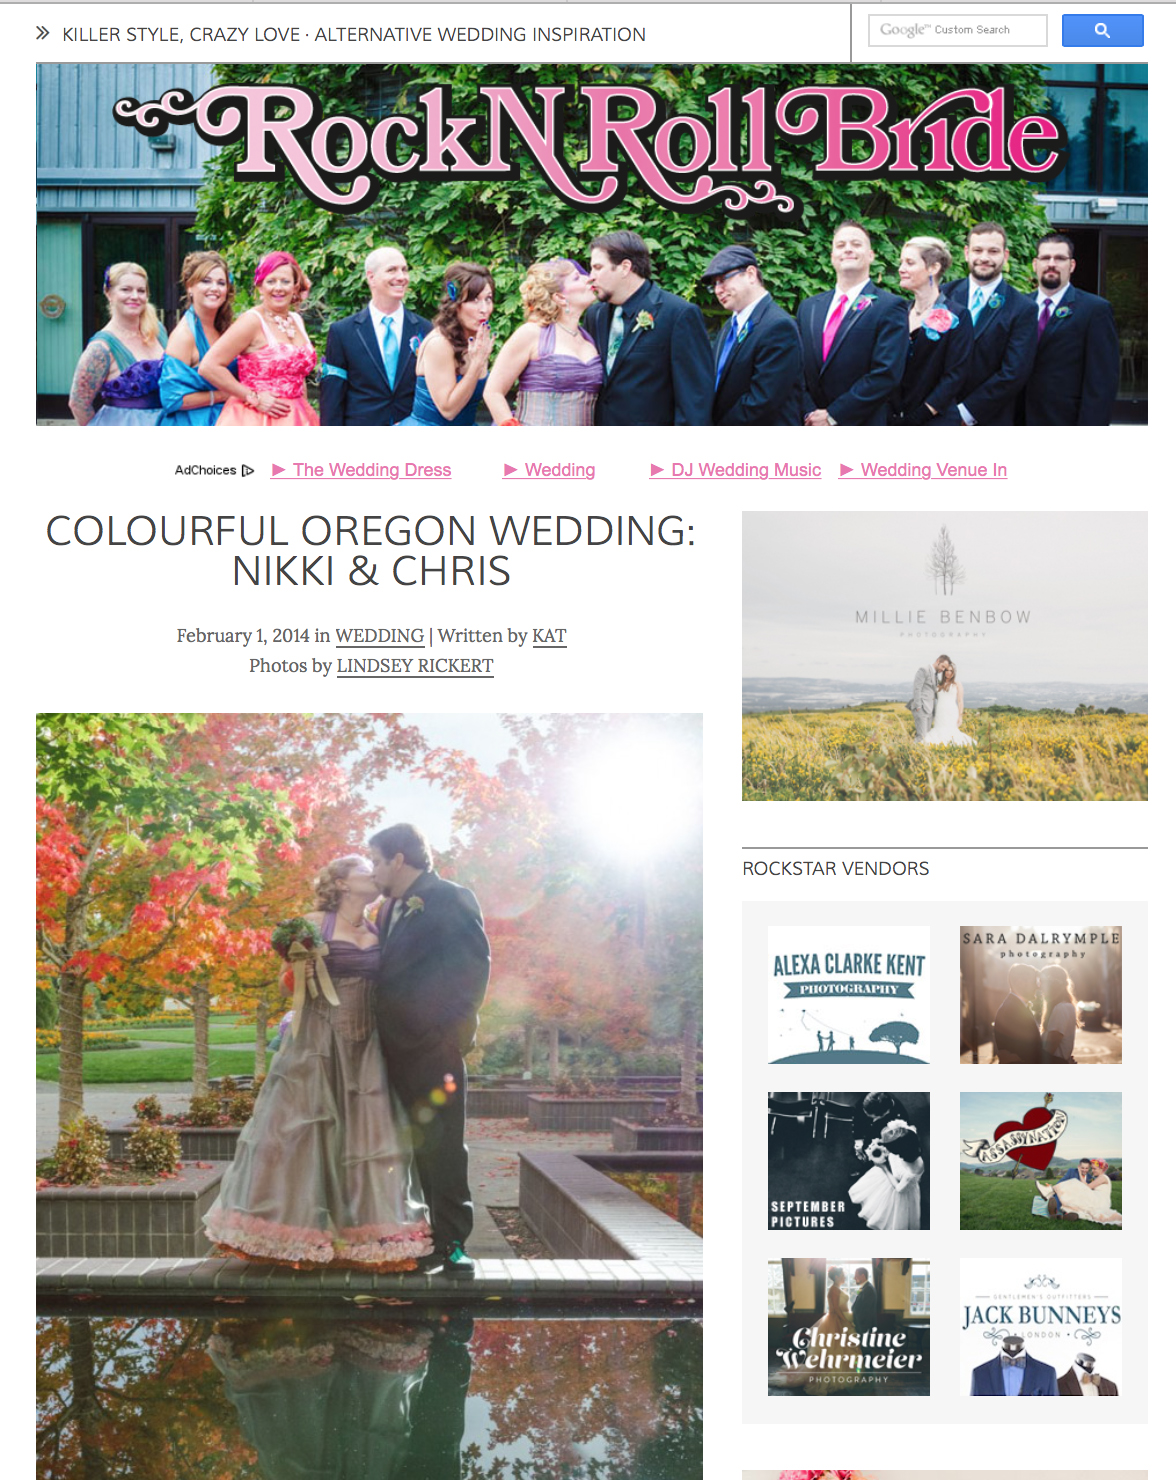 I started off the year right with a wedding feature on  Rock N Roll Bride's  website from Chris & Nikki's 2013 wedding. It was an honor to have my images featured in a publication that markets to the exact clients I am interested in working with. Unconventional, fun, and creative.